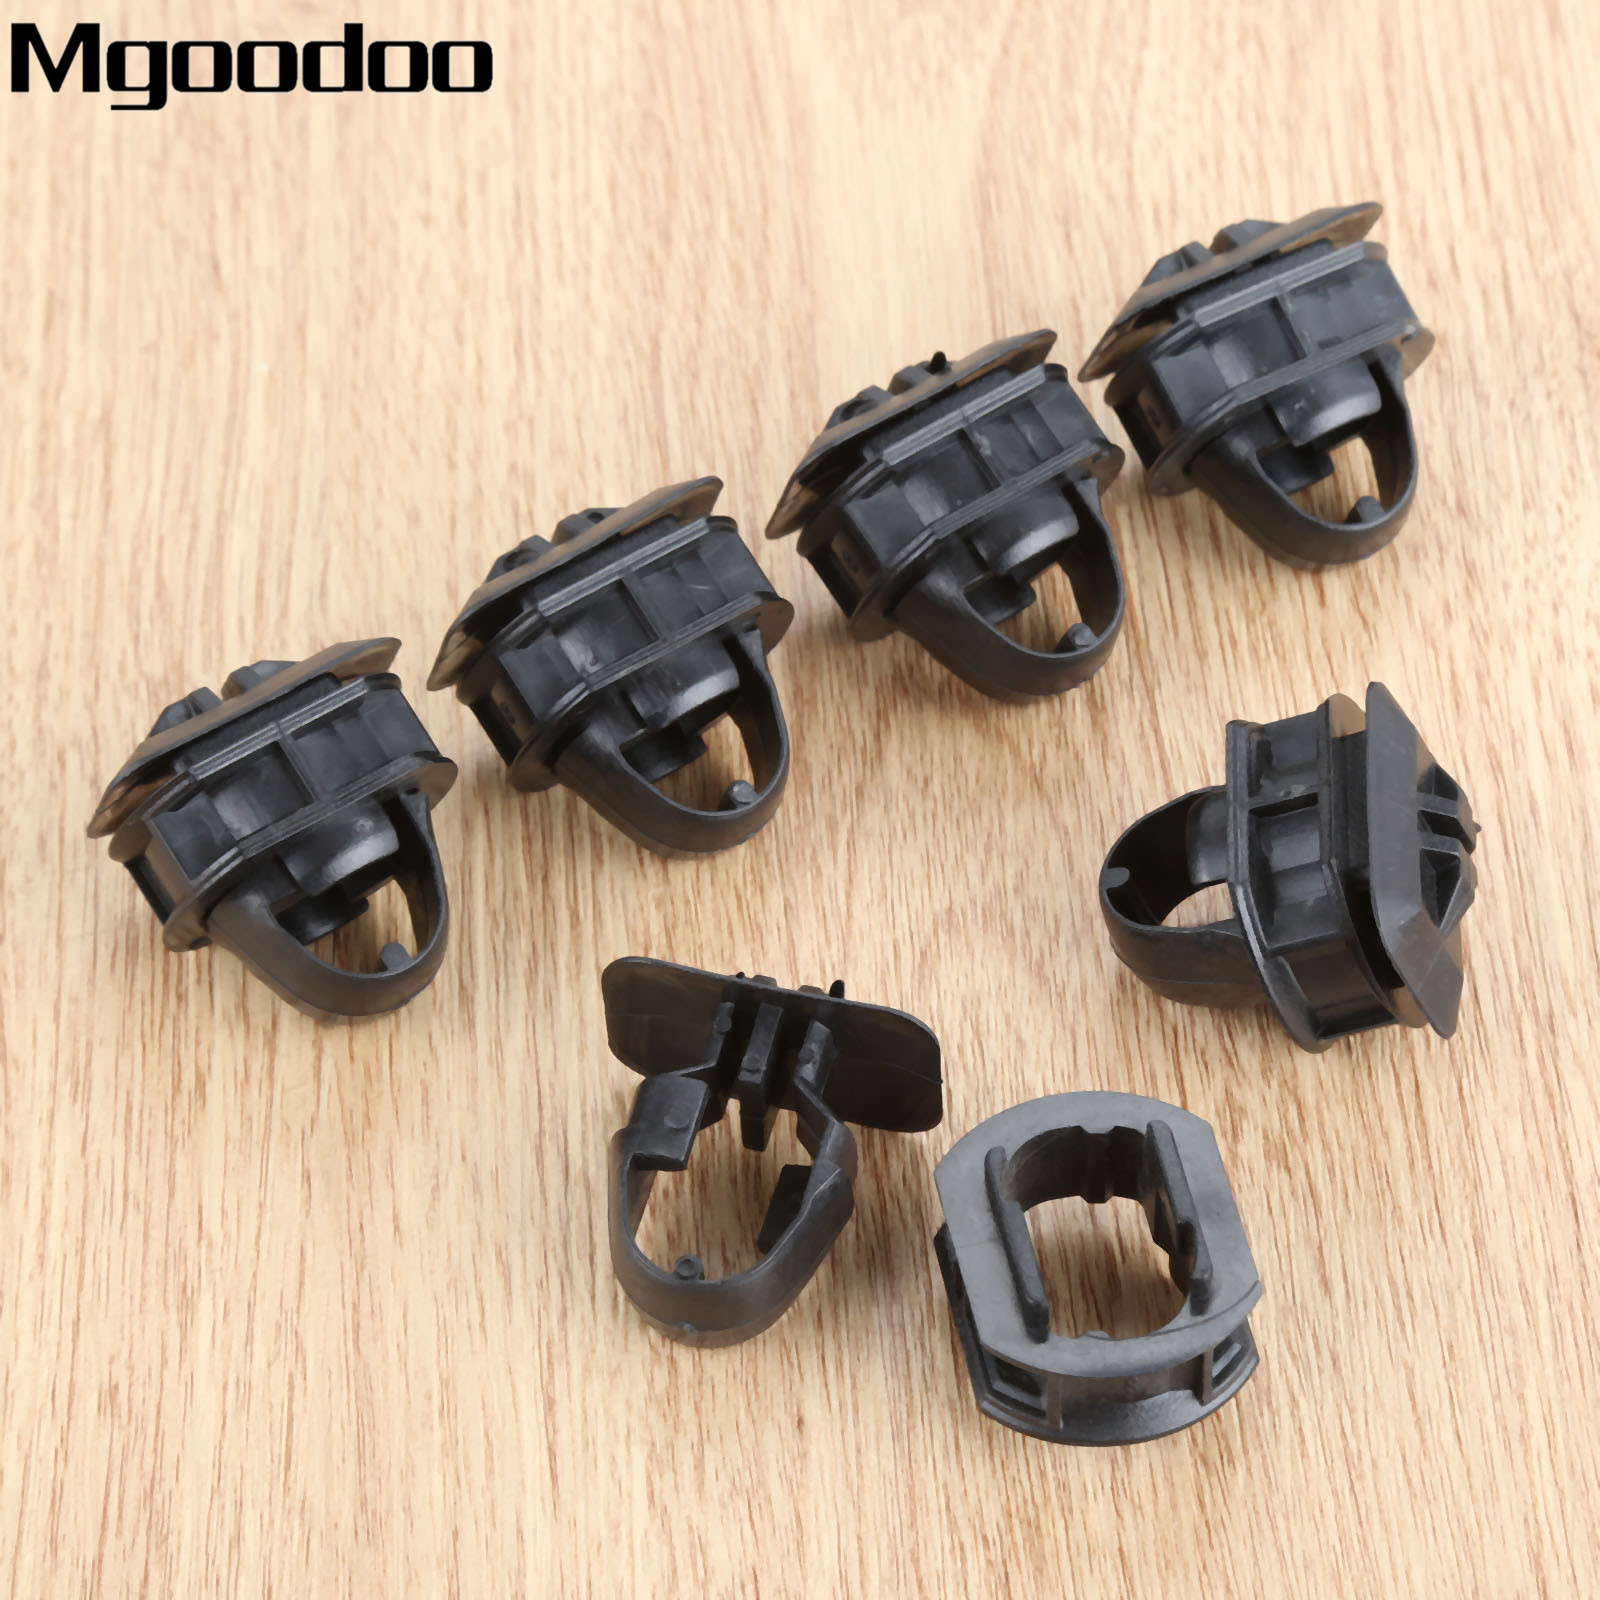 Mgoodoo 10set Side Skrit Trim Clips Auto Car Accessories For Mercedes Benz C/E/CLK class-in Auto Fastener & Clip from Automobiles & Motorcycles